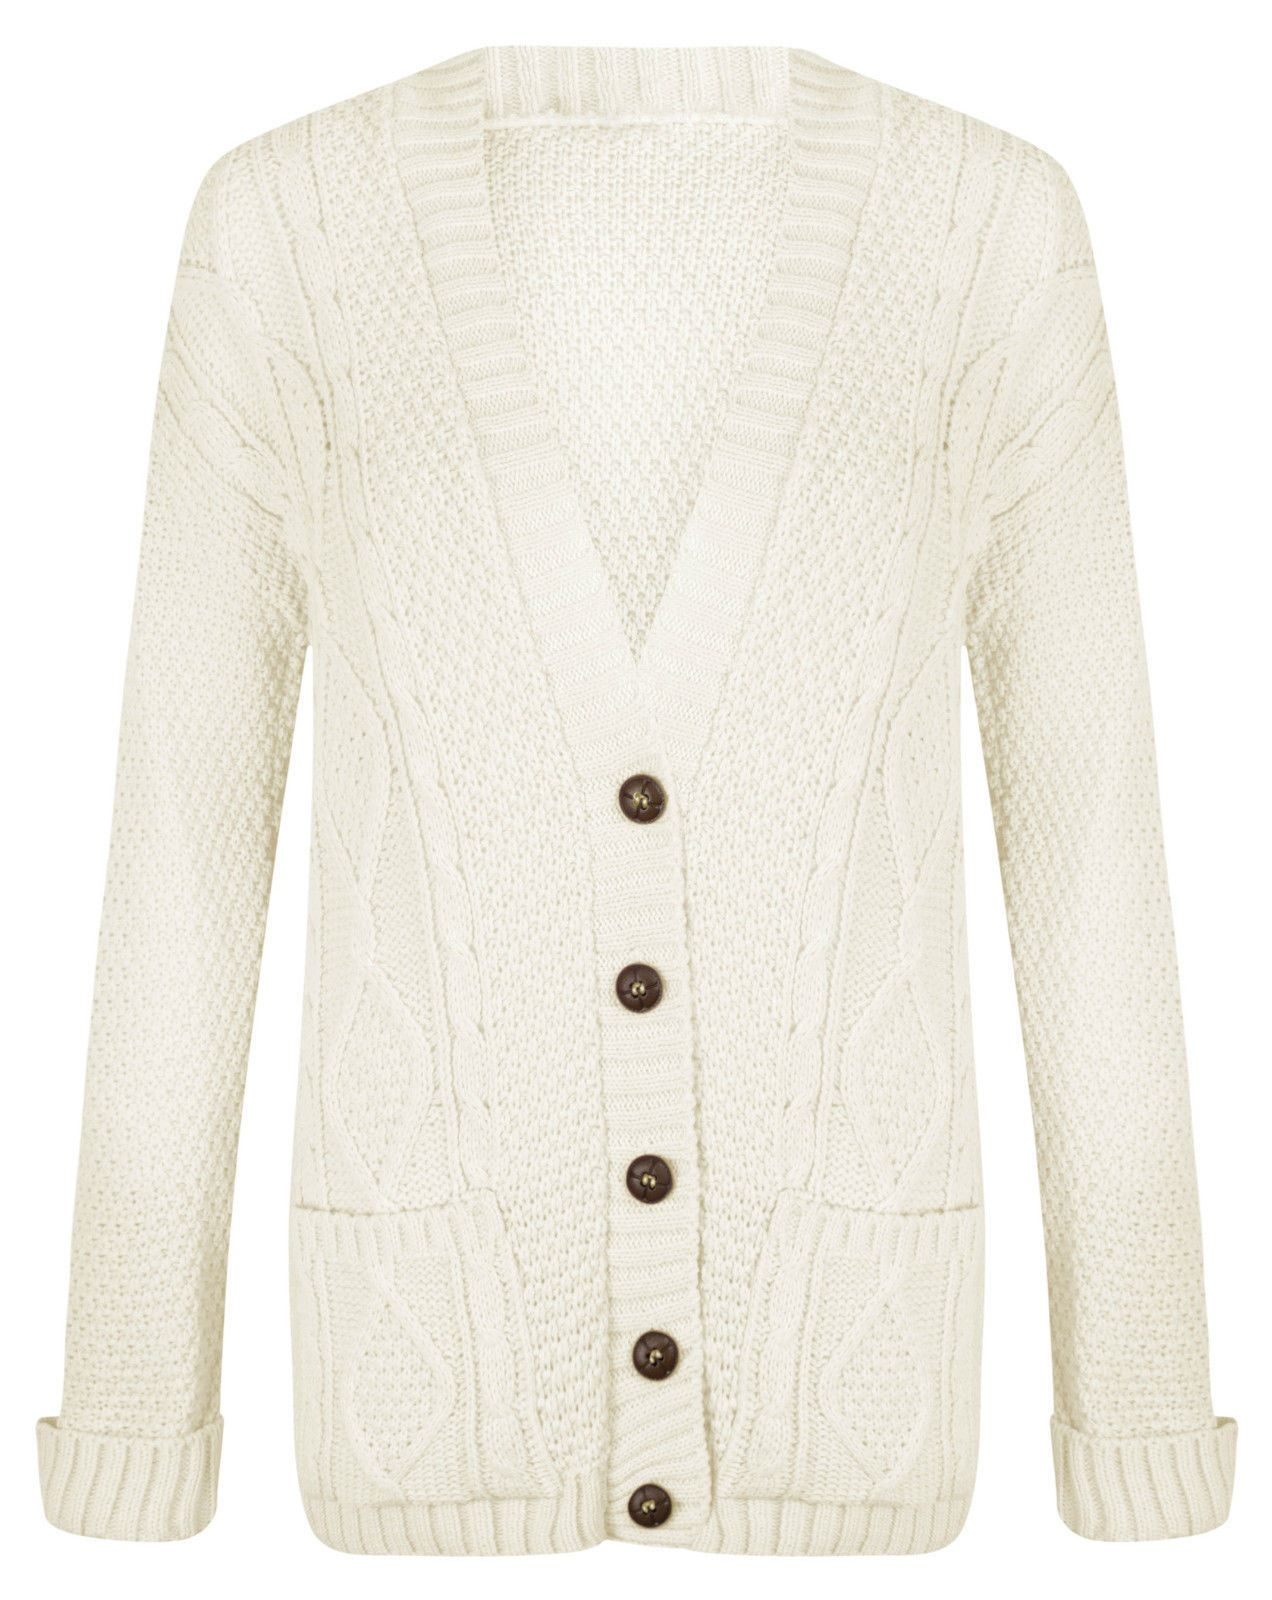 Ofenbuy Womens Cardigan Sweaters Open Front Long Sleeve Loose Chunky Knit Cardigans Outwears. by Ofenbuy. $ - $ $ 23 $ 35 98 Prime. FREE Shipping on eligible orders. Some sizes/colors are Prime eligible. out of 5 stars 4.